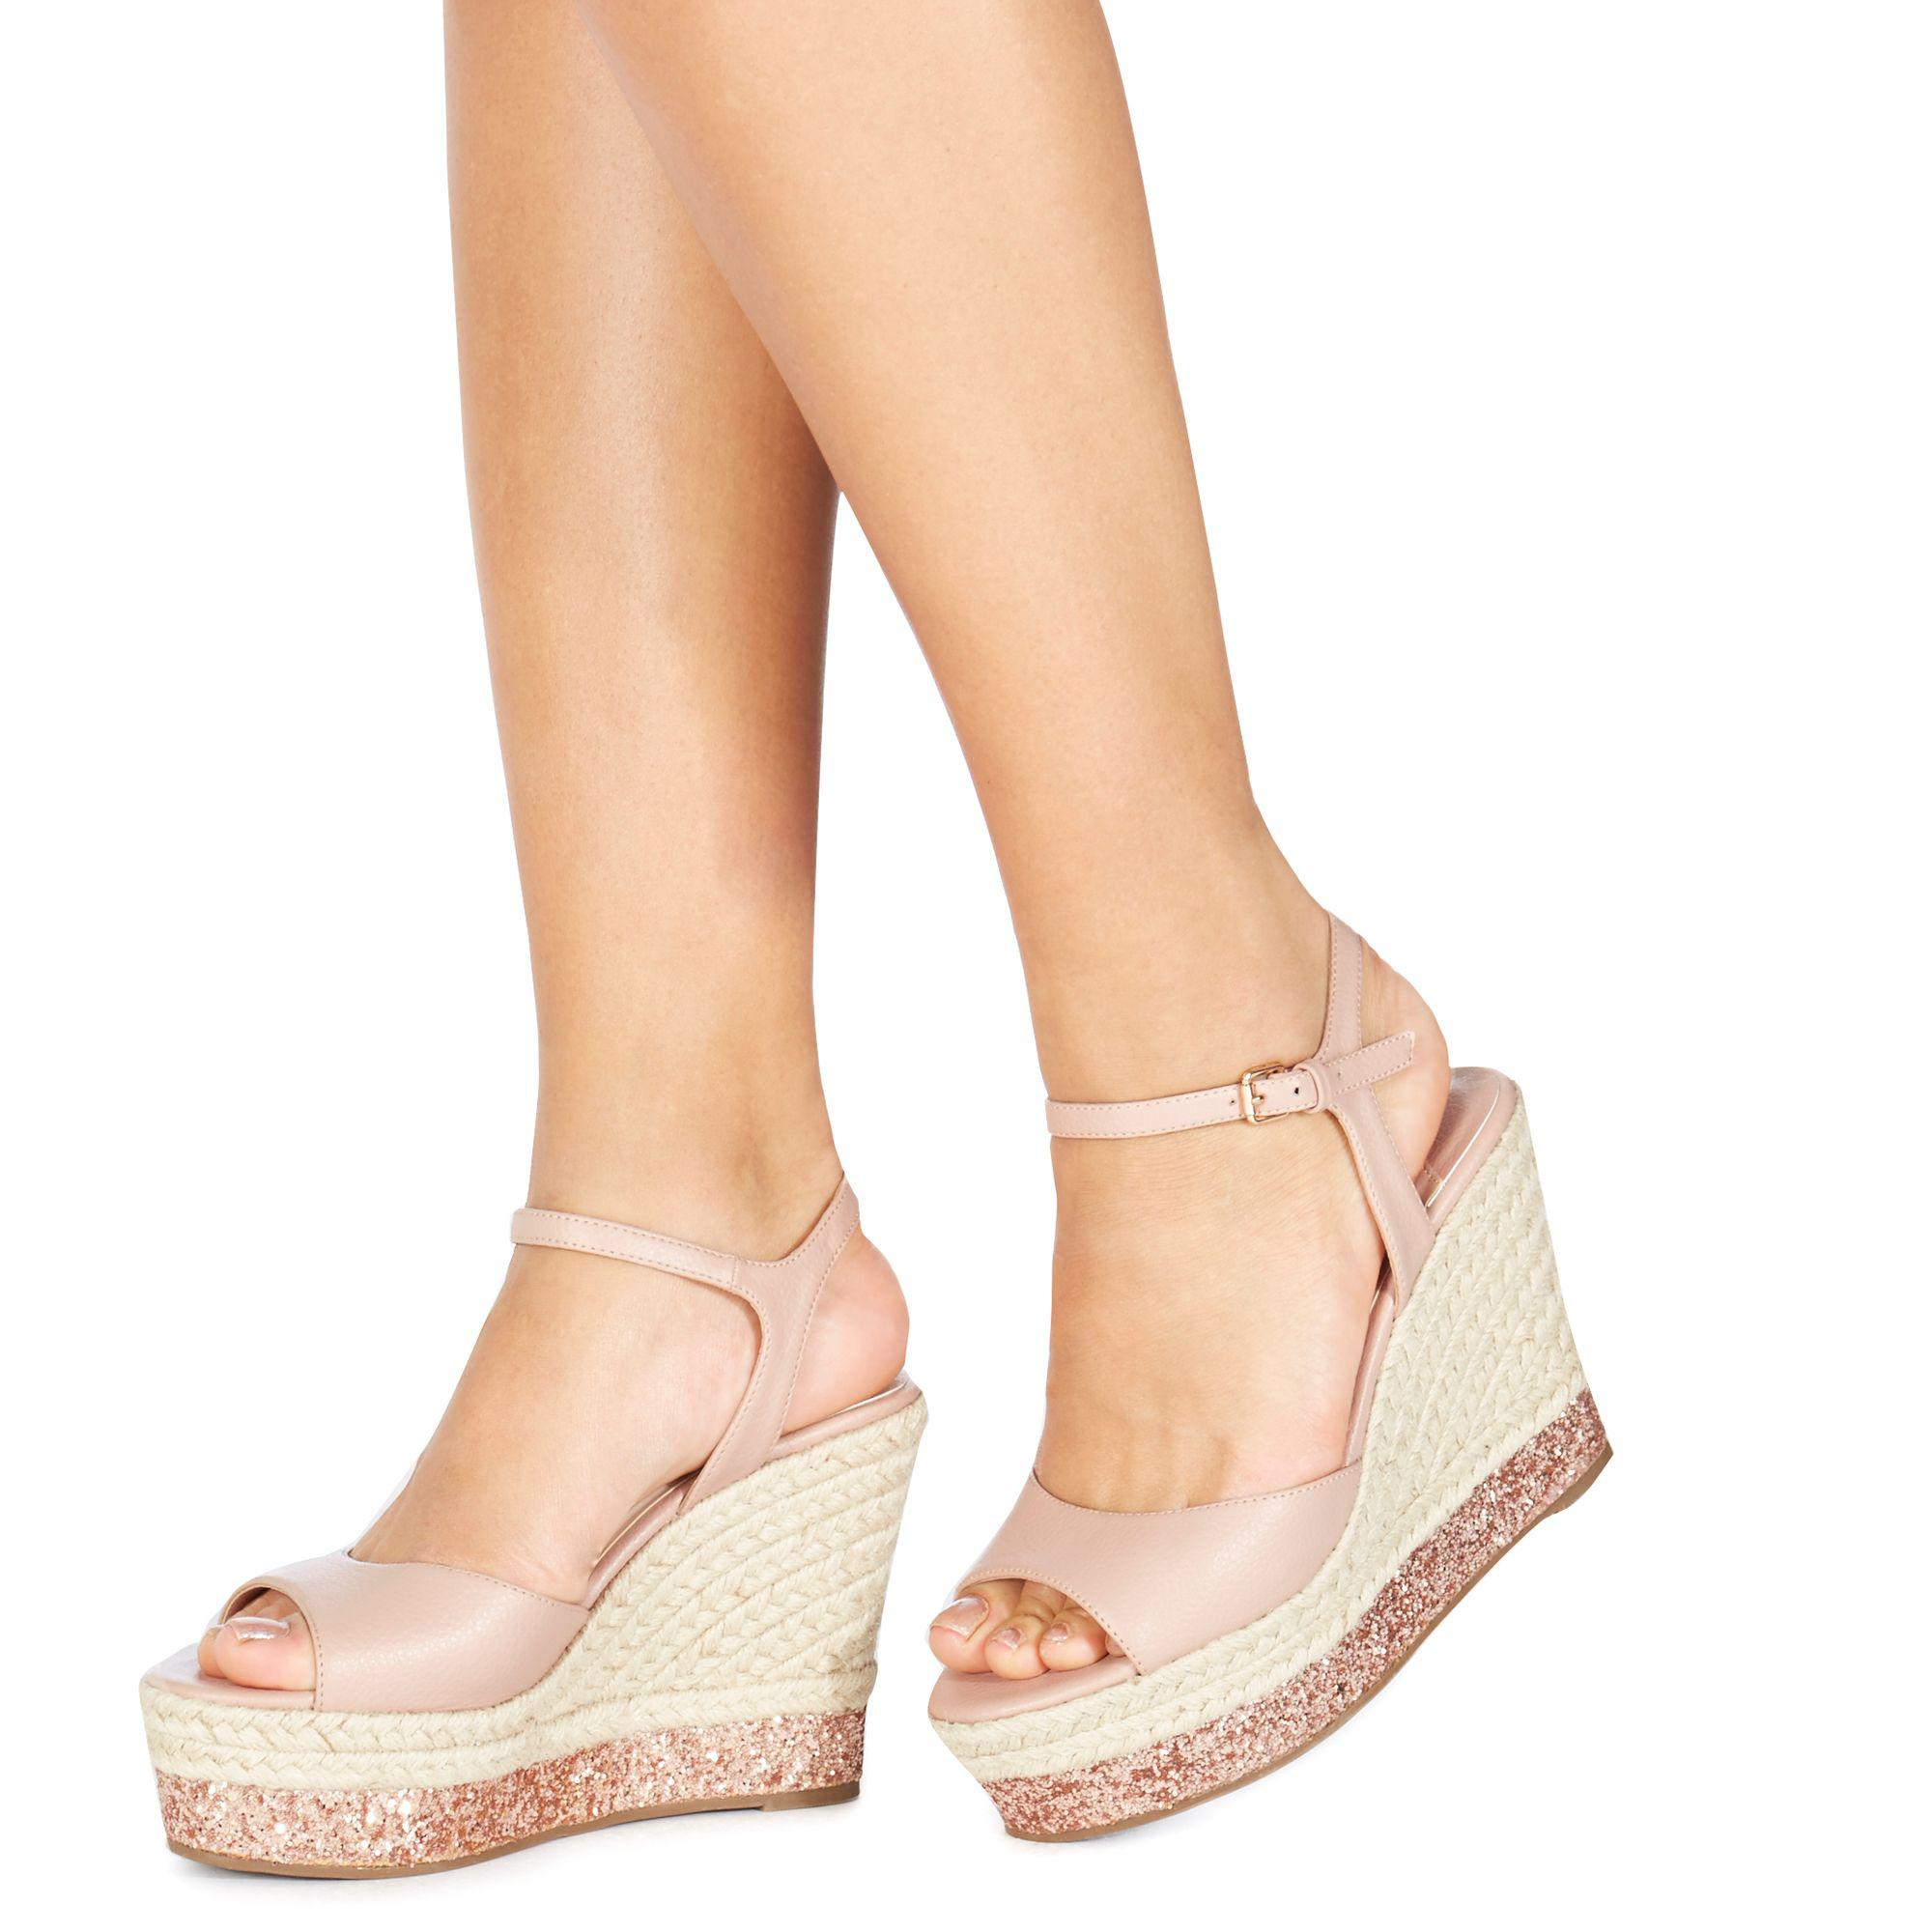 6ceb3c84fbf4 Faith Light Pink  liddy  High Wedge Heel Ankle Strap Sandals in Pink ...